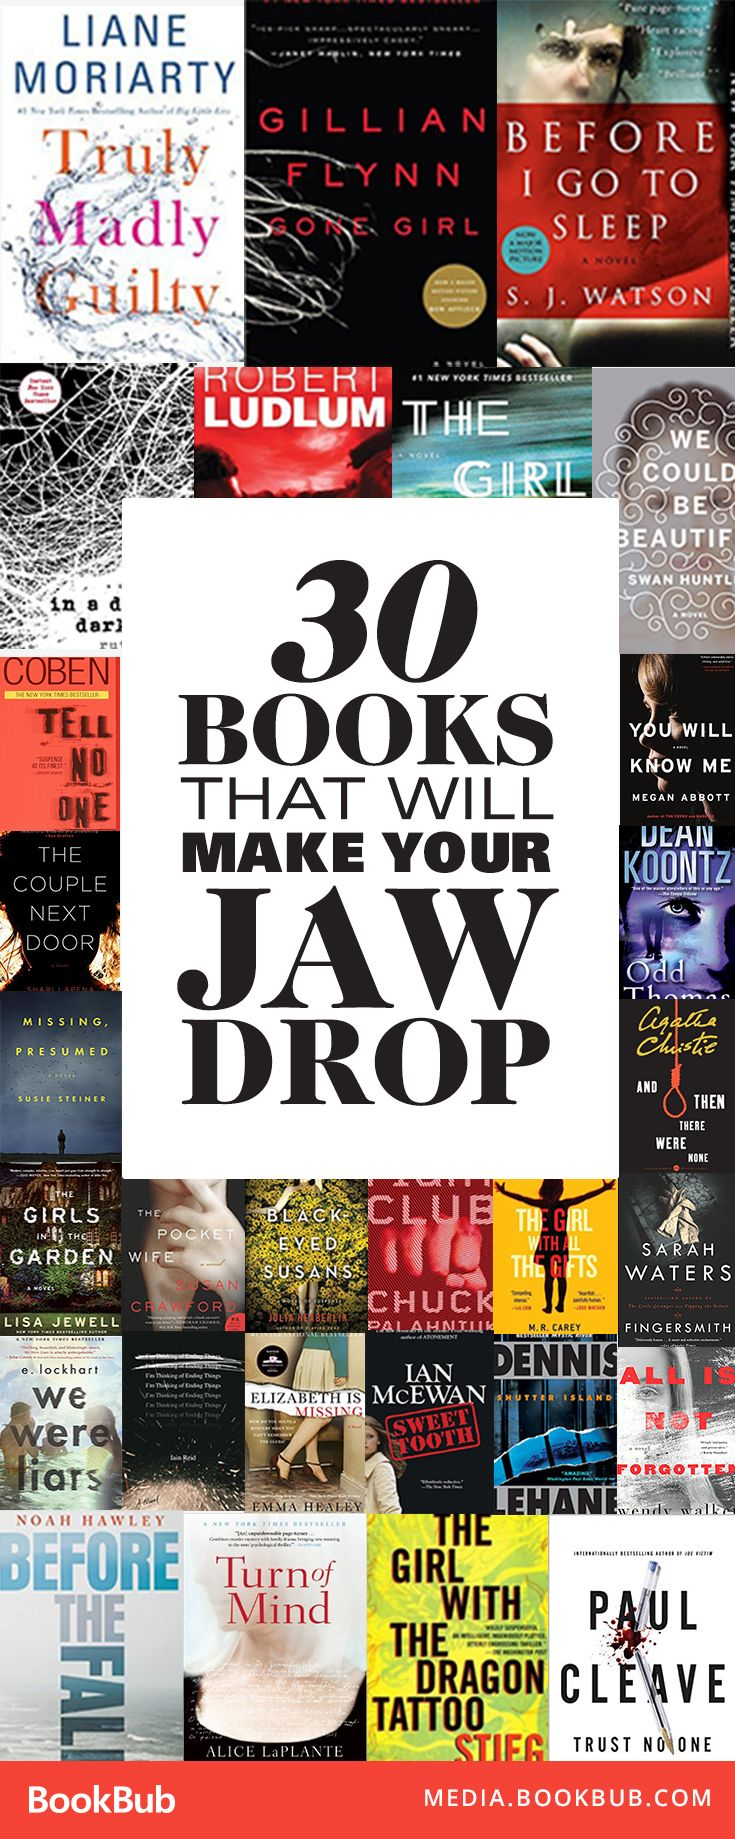 30 books that will make your jaw drop, including bestselling psychological thrillers and thriller books with plot twists with plenty of suspense.